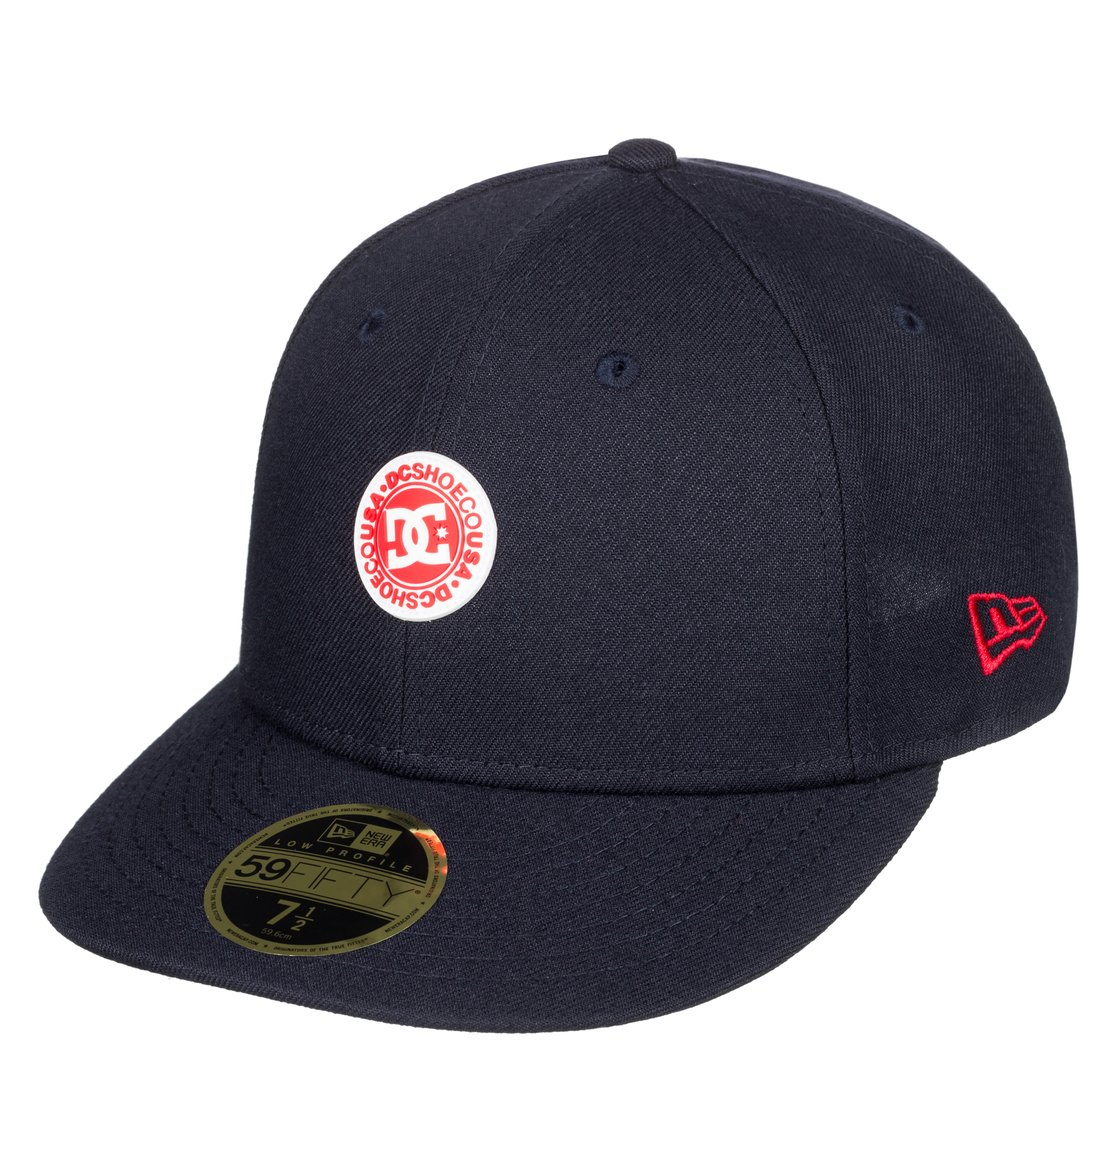 Shoes Pour Rally New Era Casquette Homme Adyha03816Dc Up XPkuTwZlOi